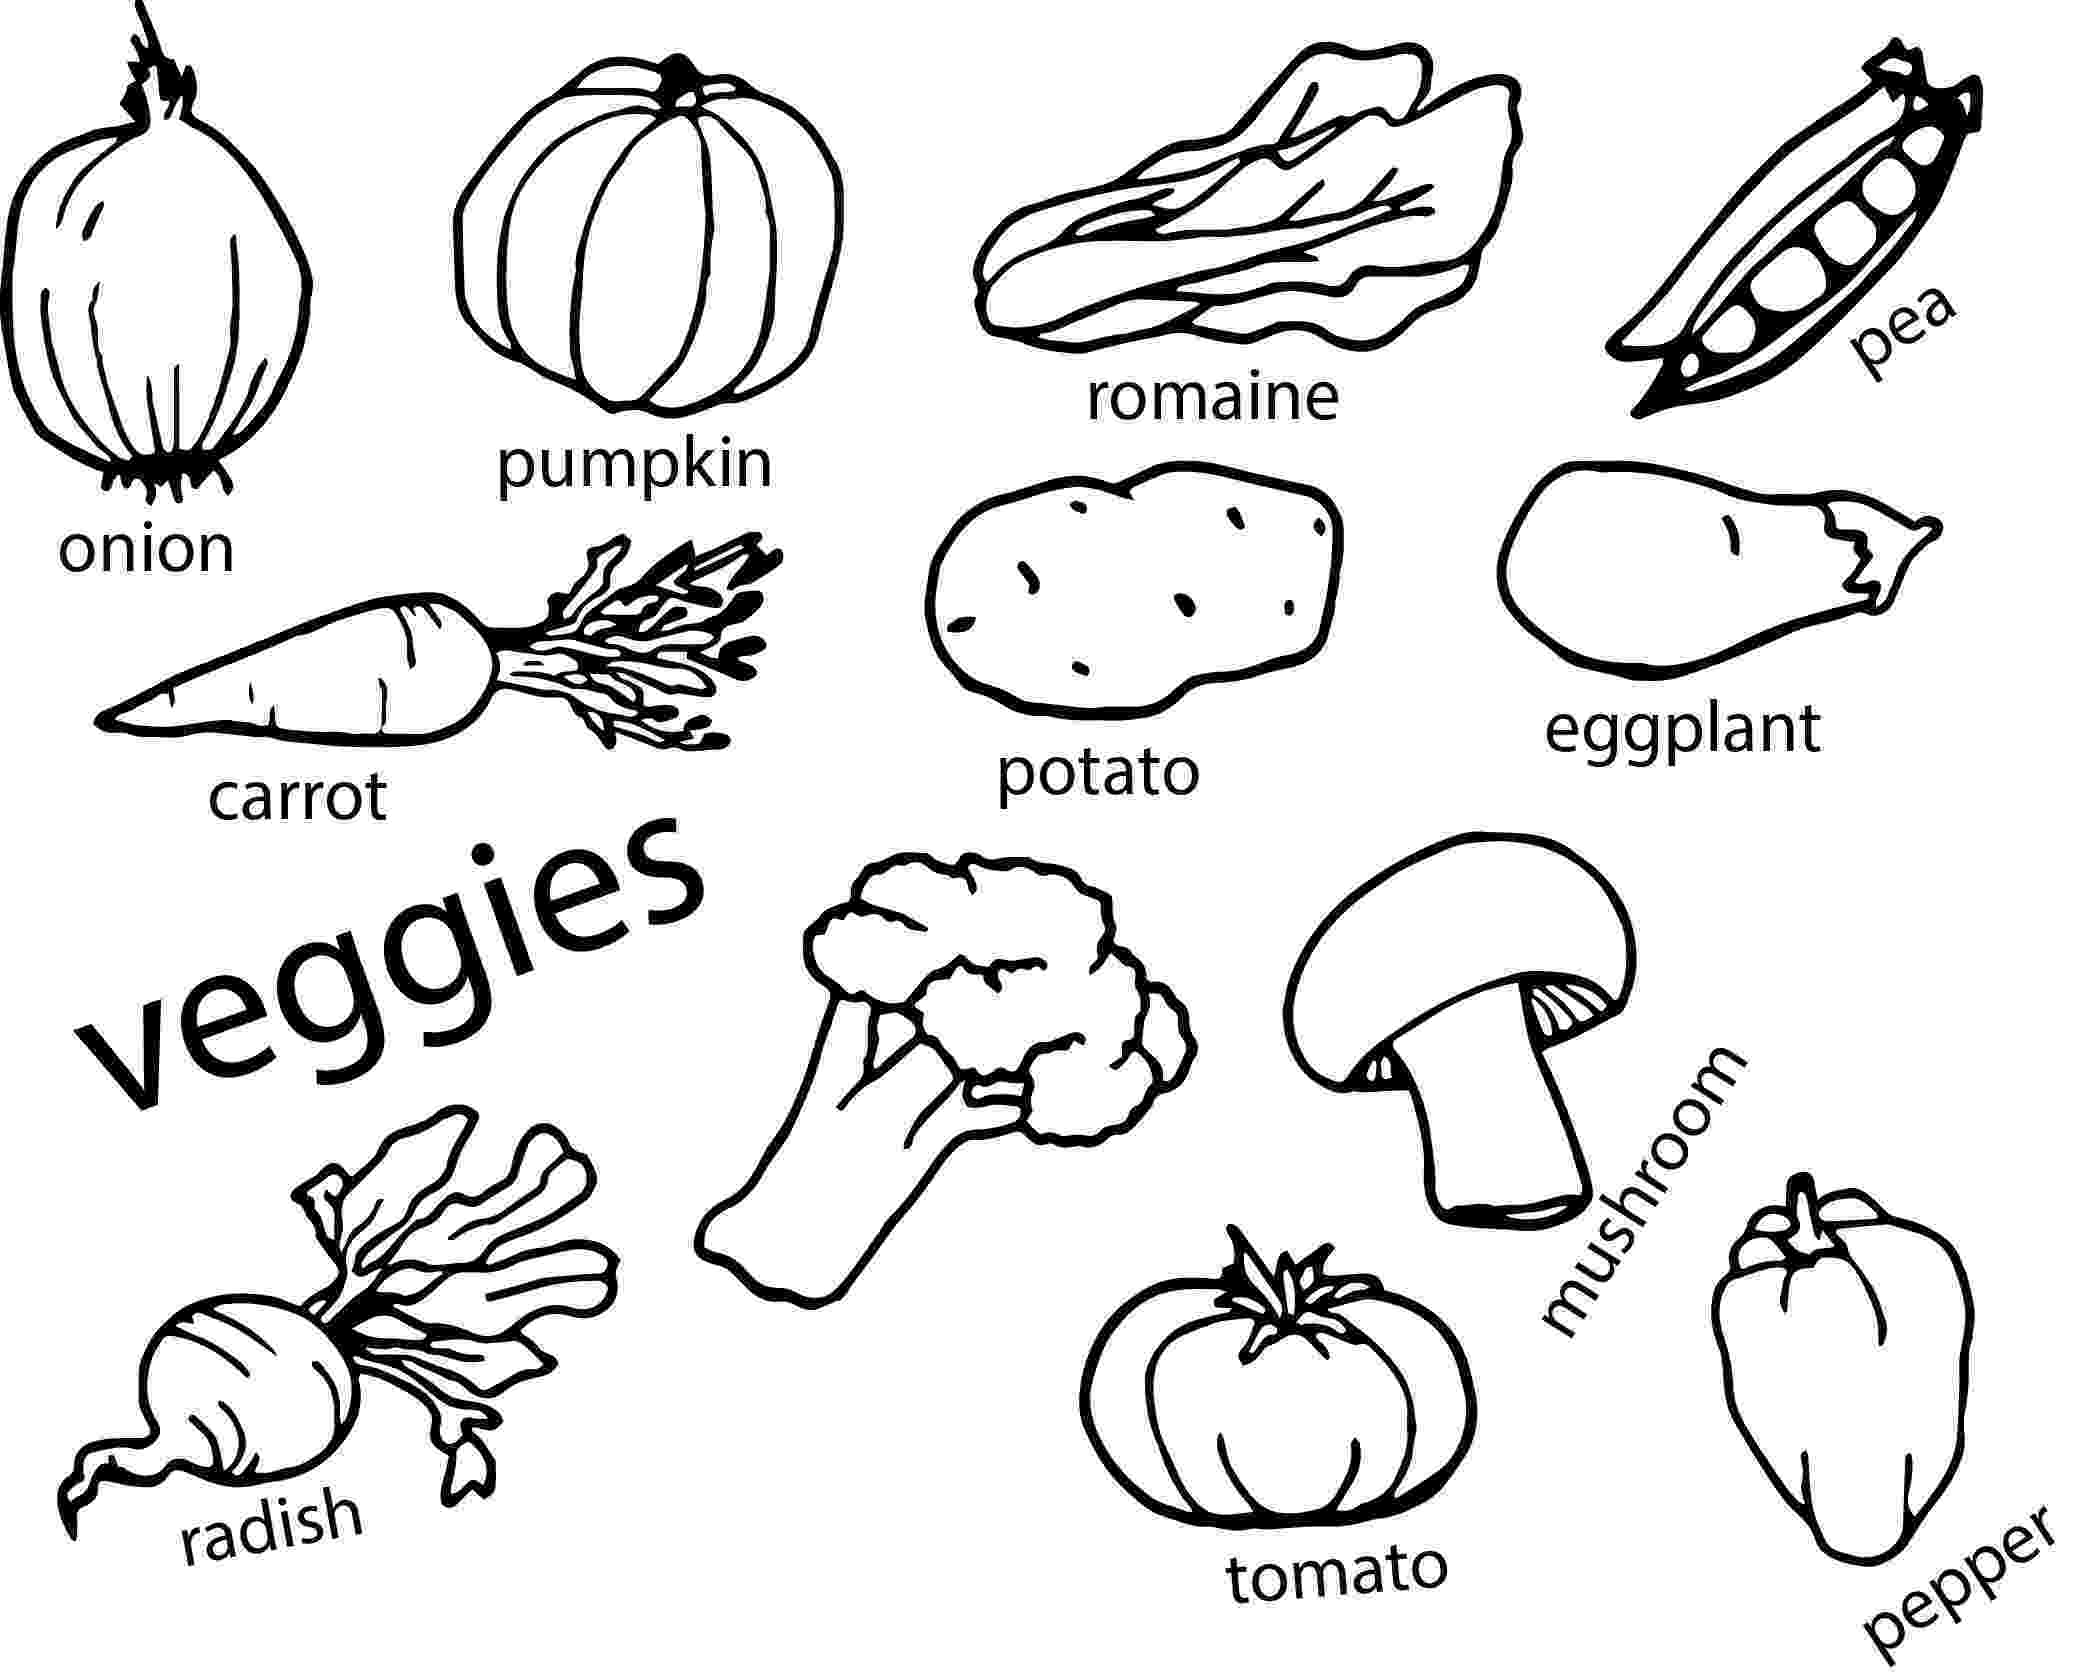 vegetables coloring vegetables coloring pages getcoloringpagescom vegetables coloring 1 1